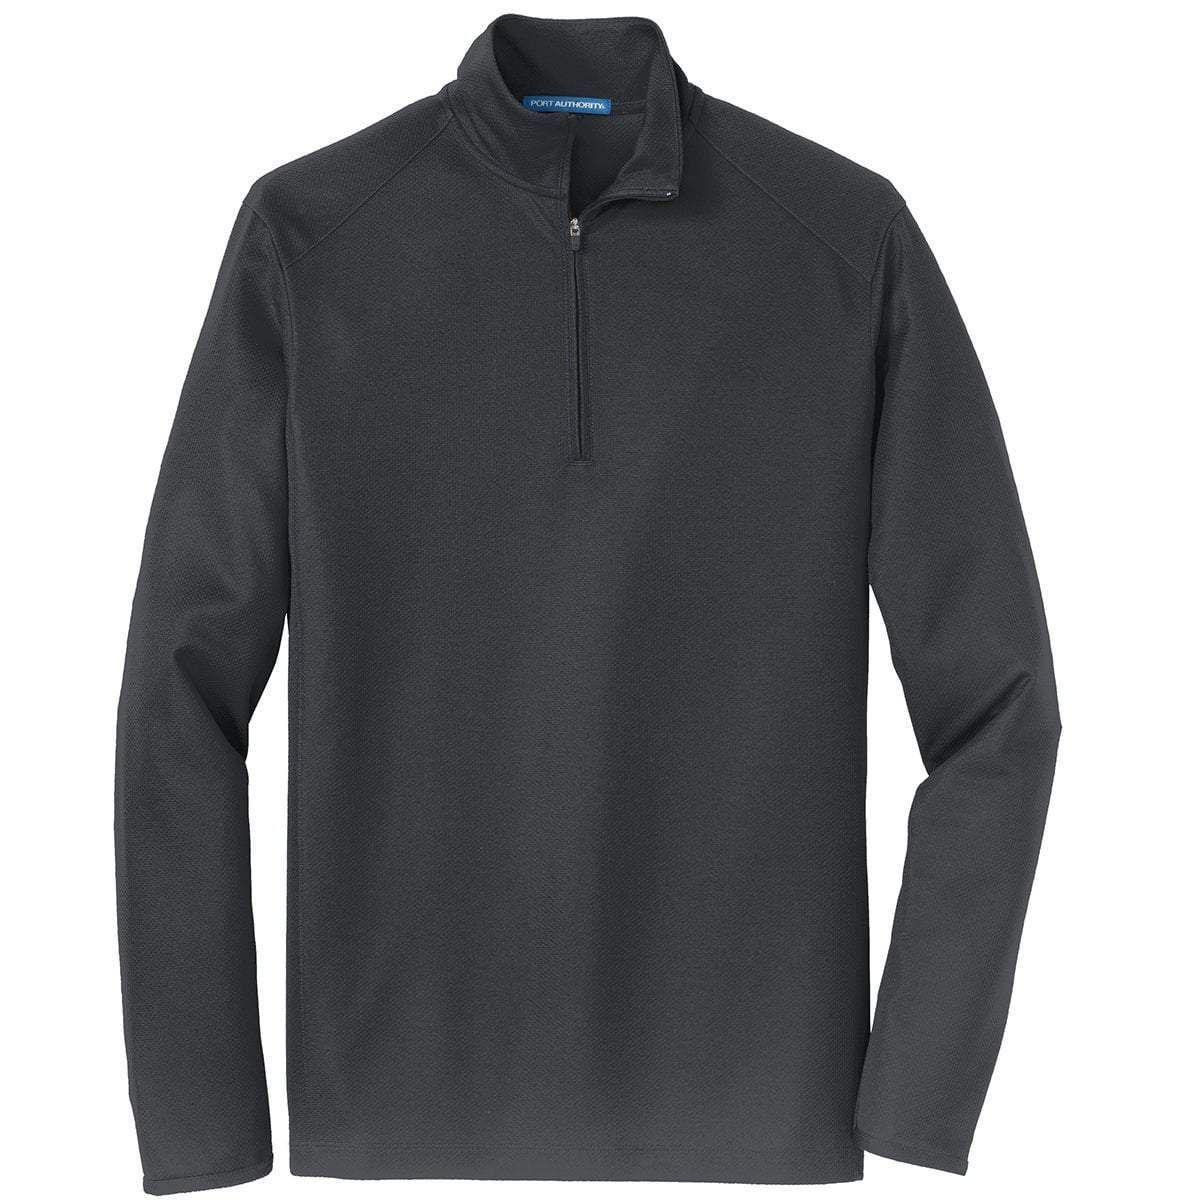 Port Authority 1/4 Zip Pullovers Battleship Grey / XS K806 | Port Authority® Unisex/Mens Pinpoint Mesh 1/2-Zip